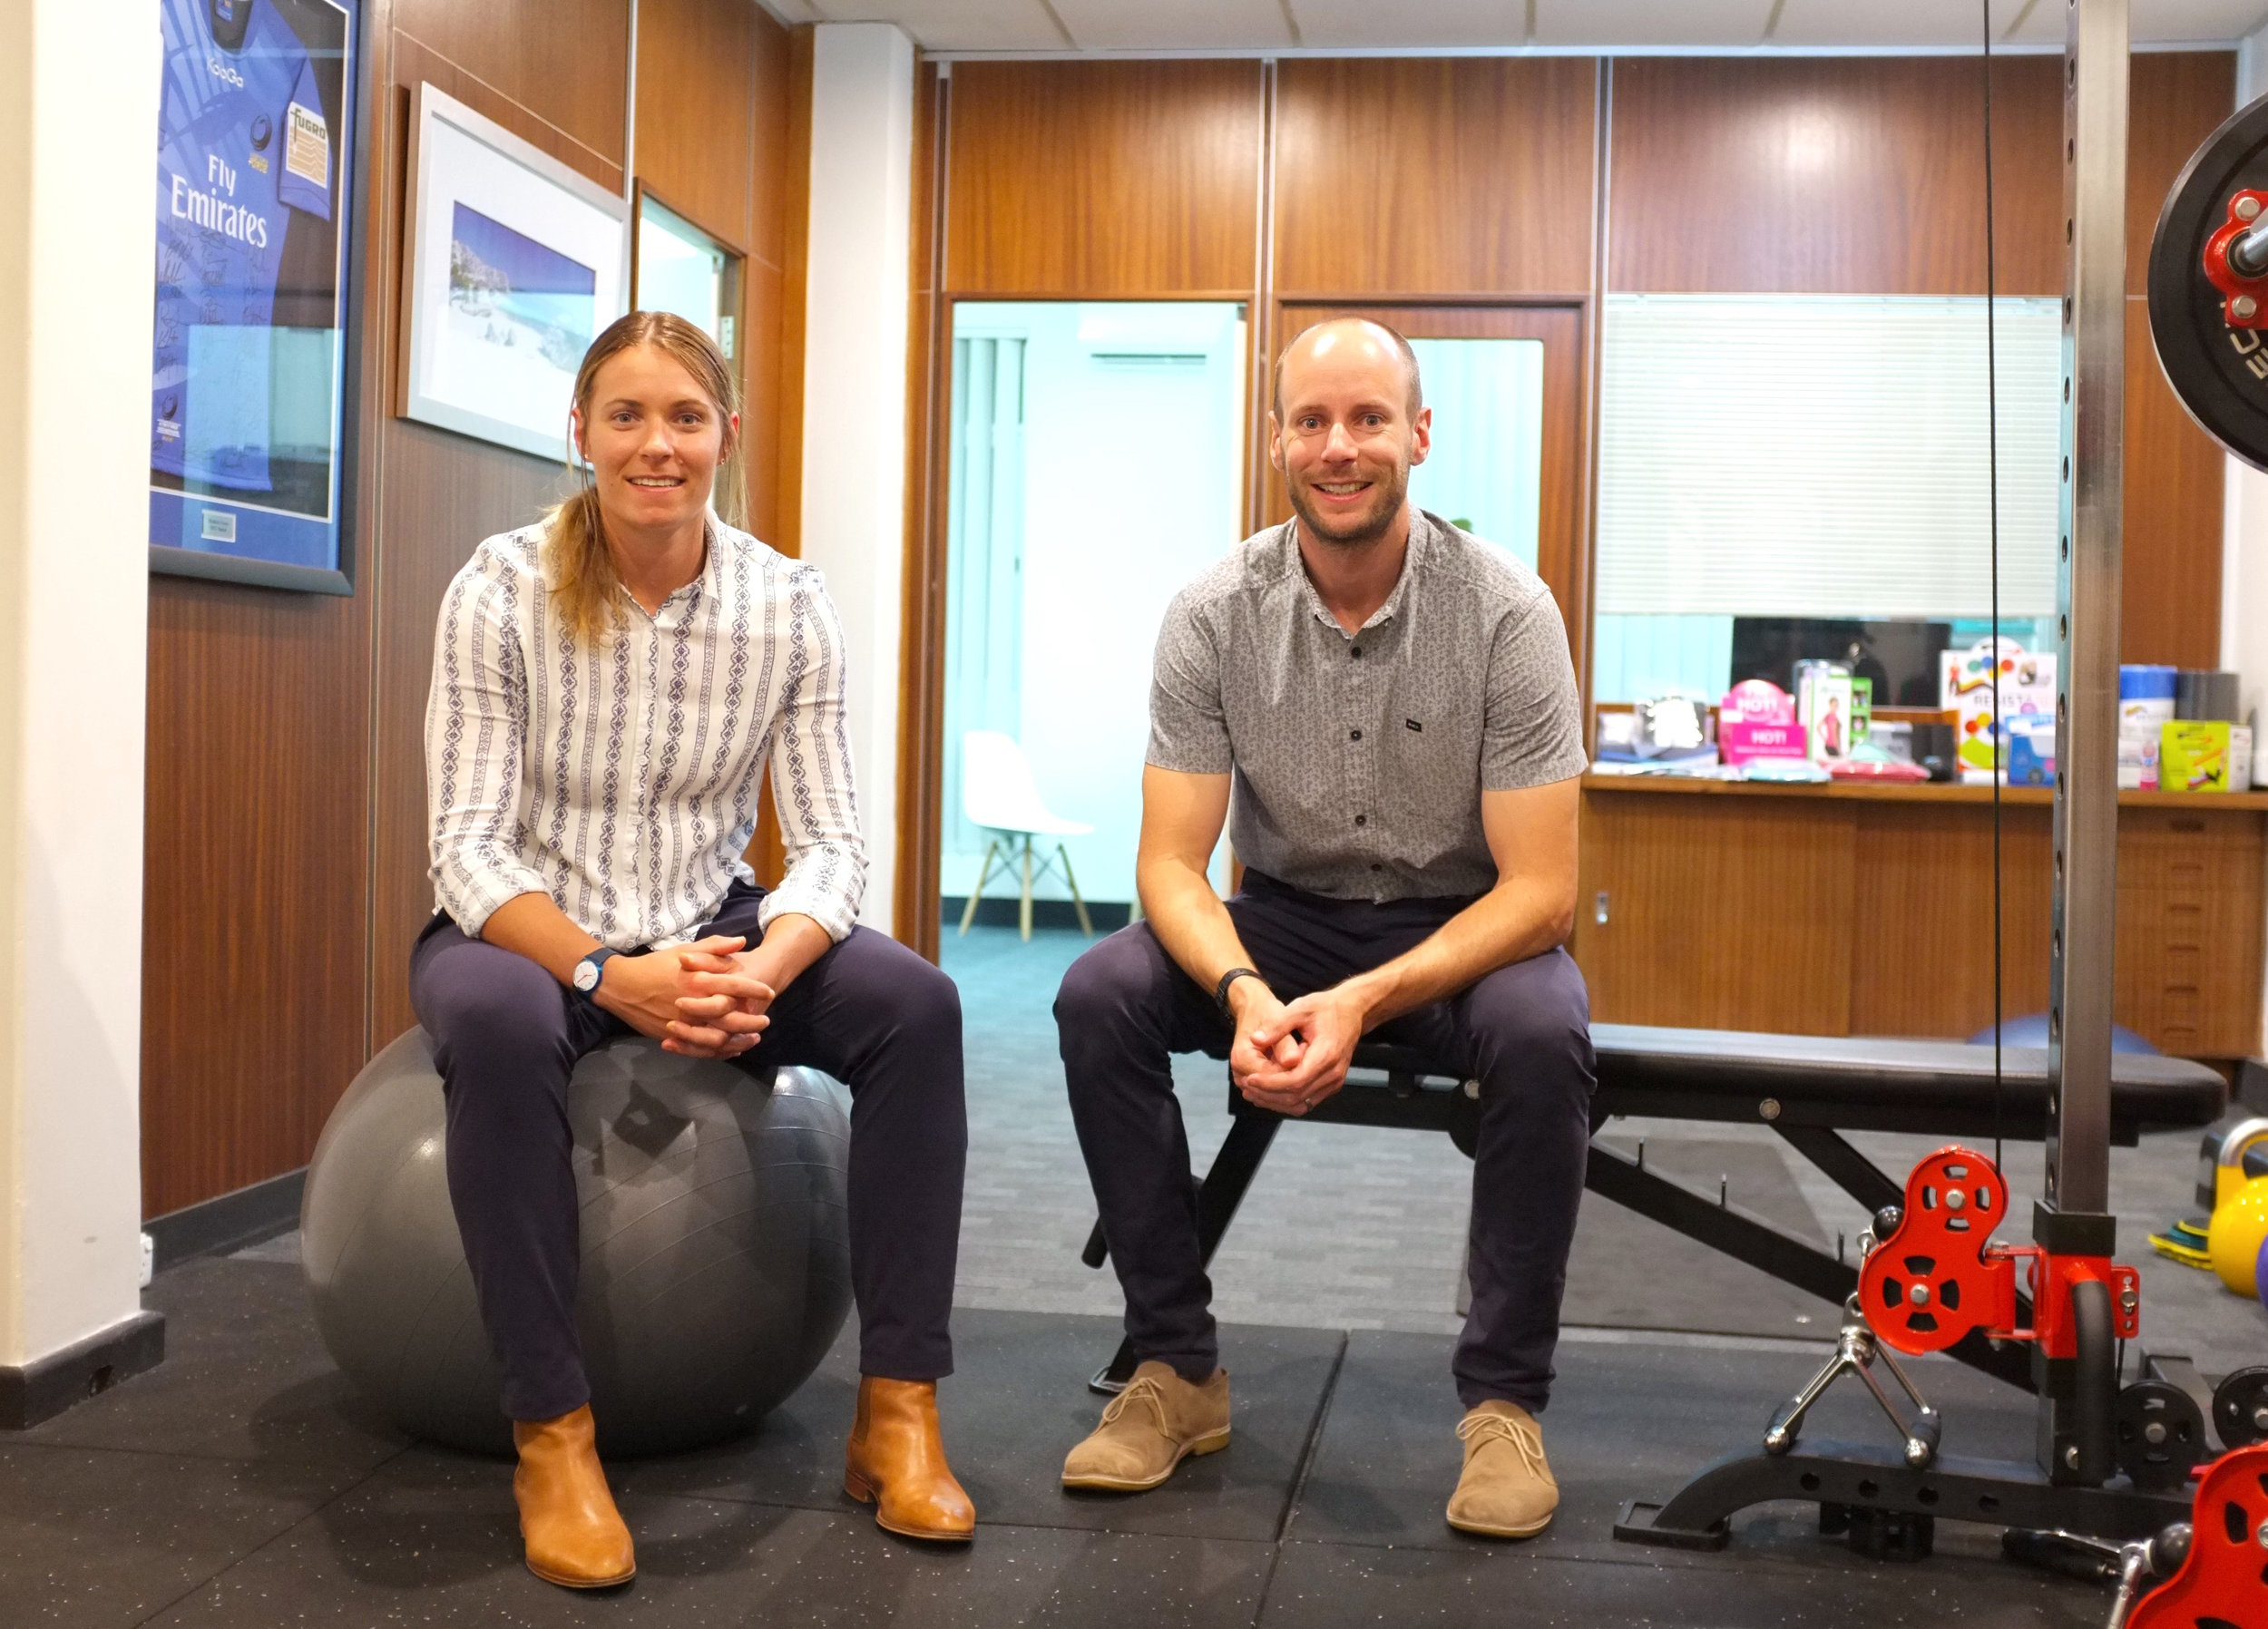 Nicola and Ben in the Stack St Physio gym.